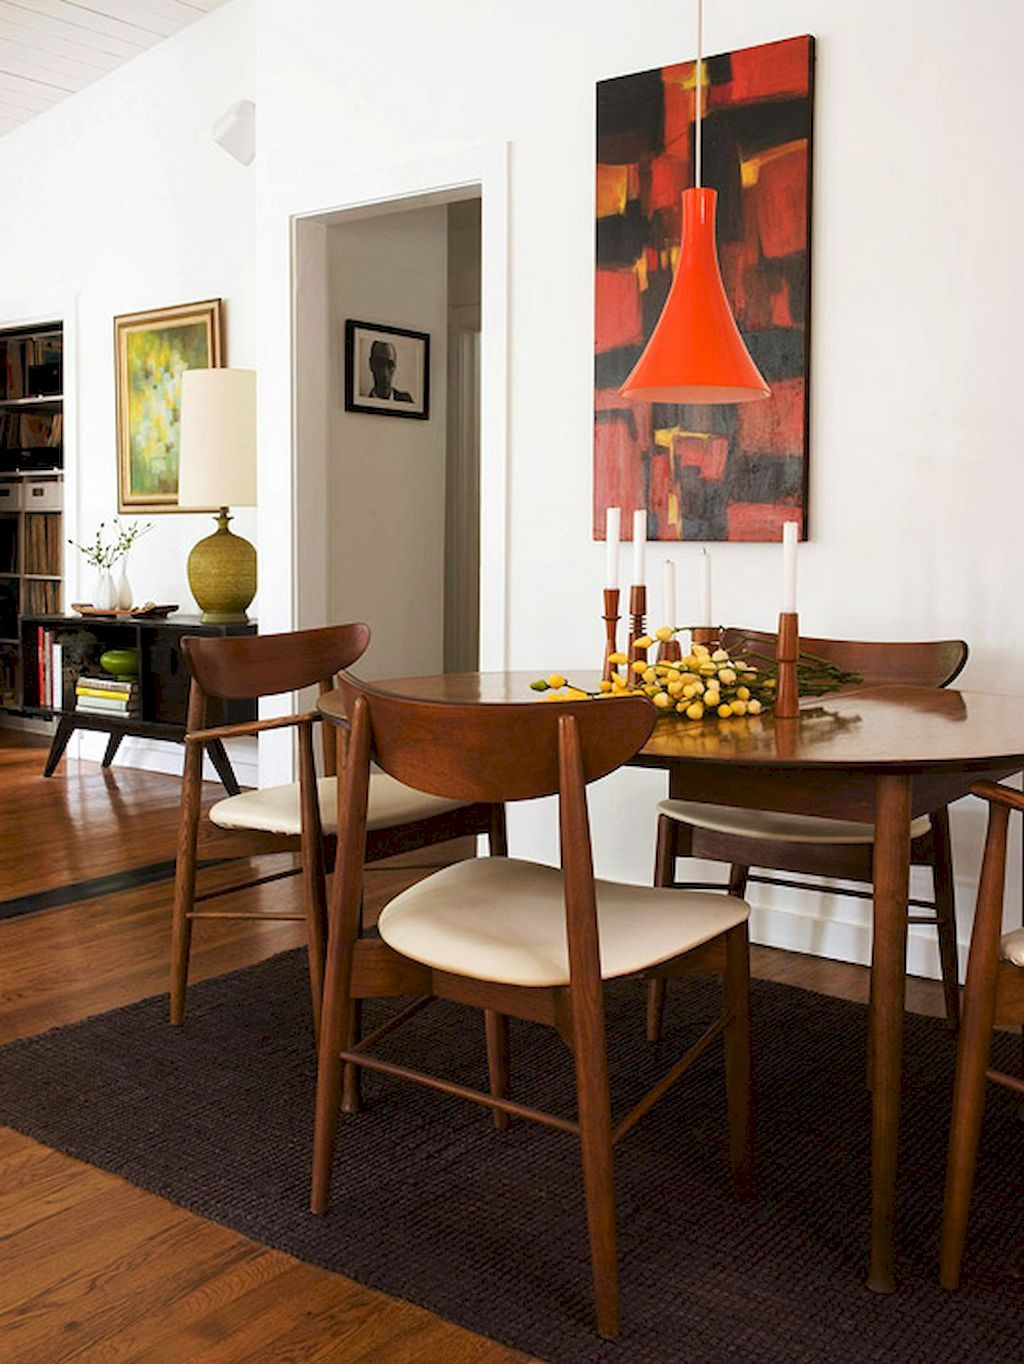 70 Modern Mid Century Dining Room Table Ideas (With Images